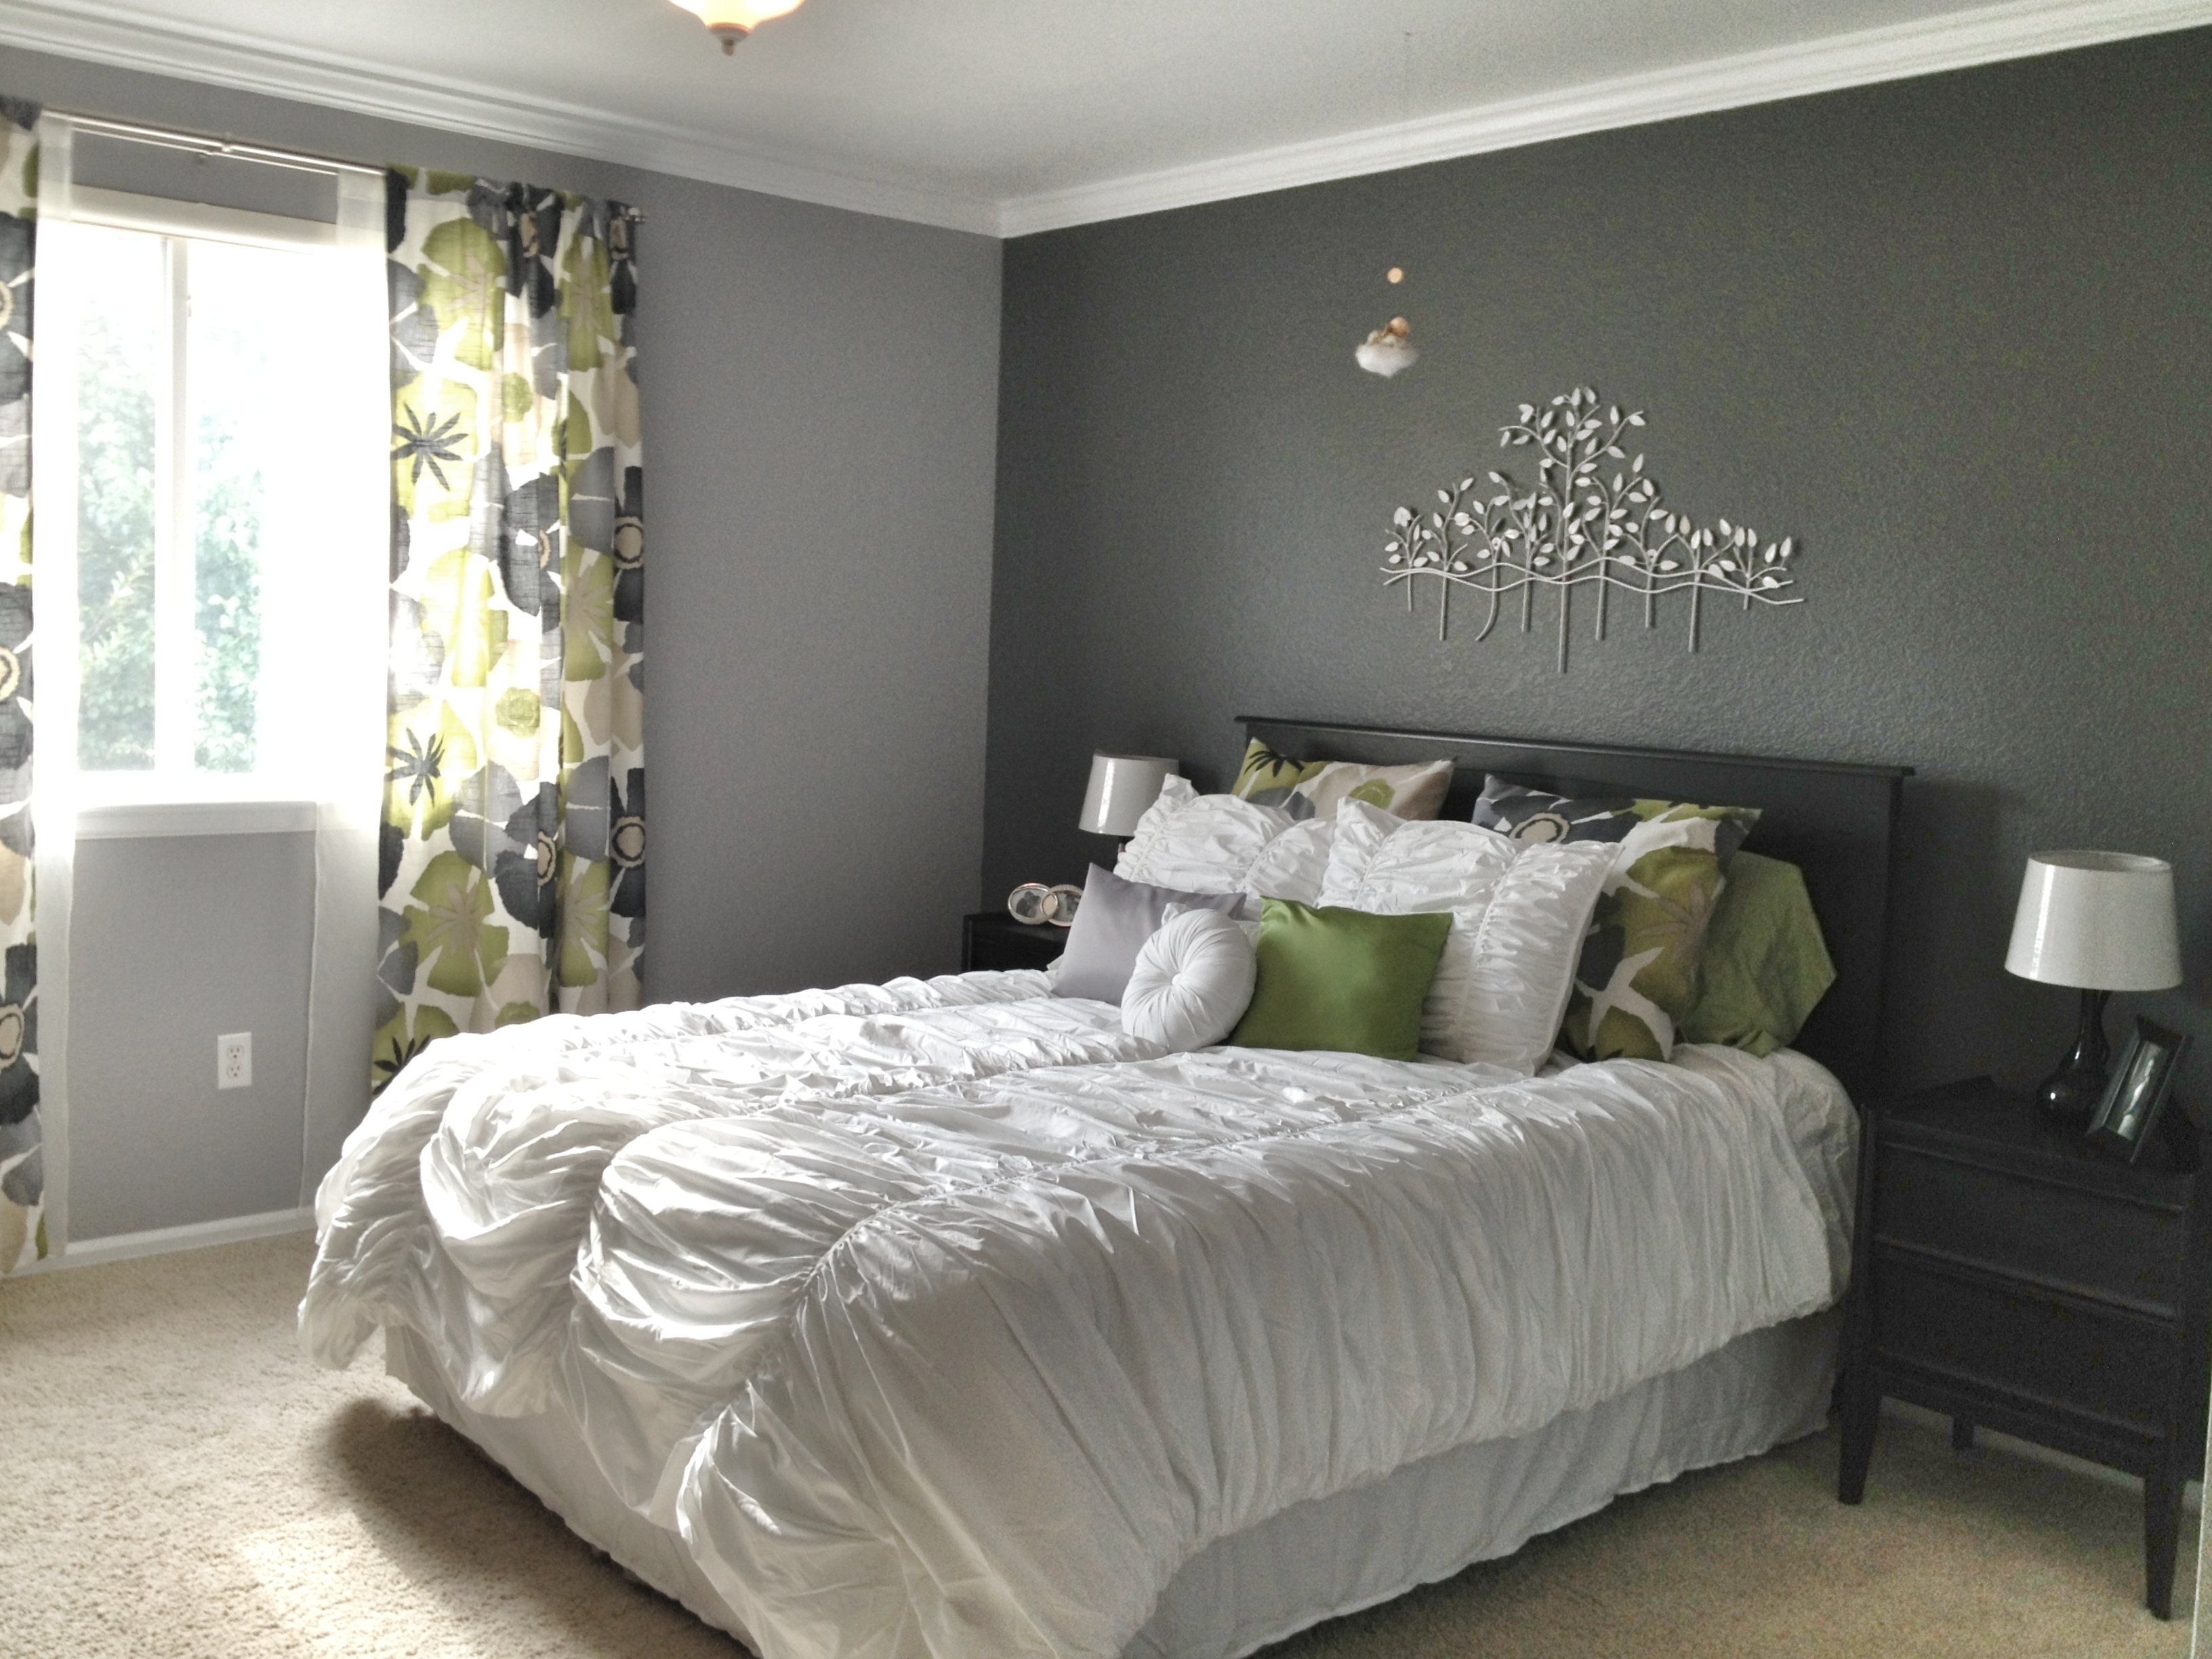 Fullsize Of Wallpapering Ideas For Bedrooms